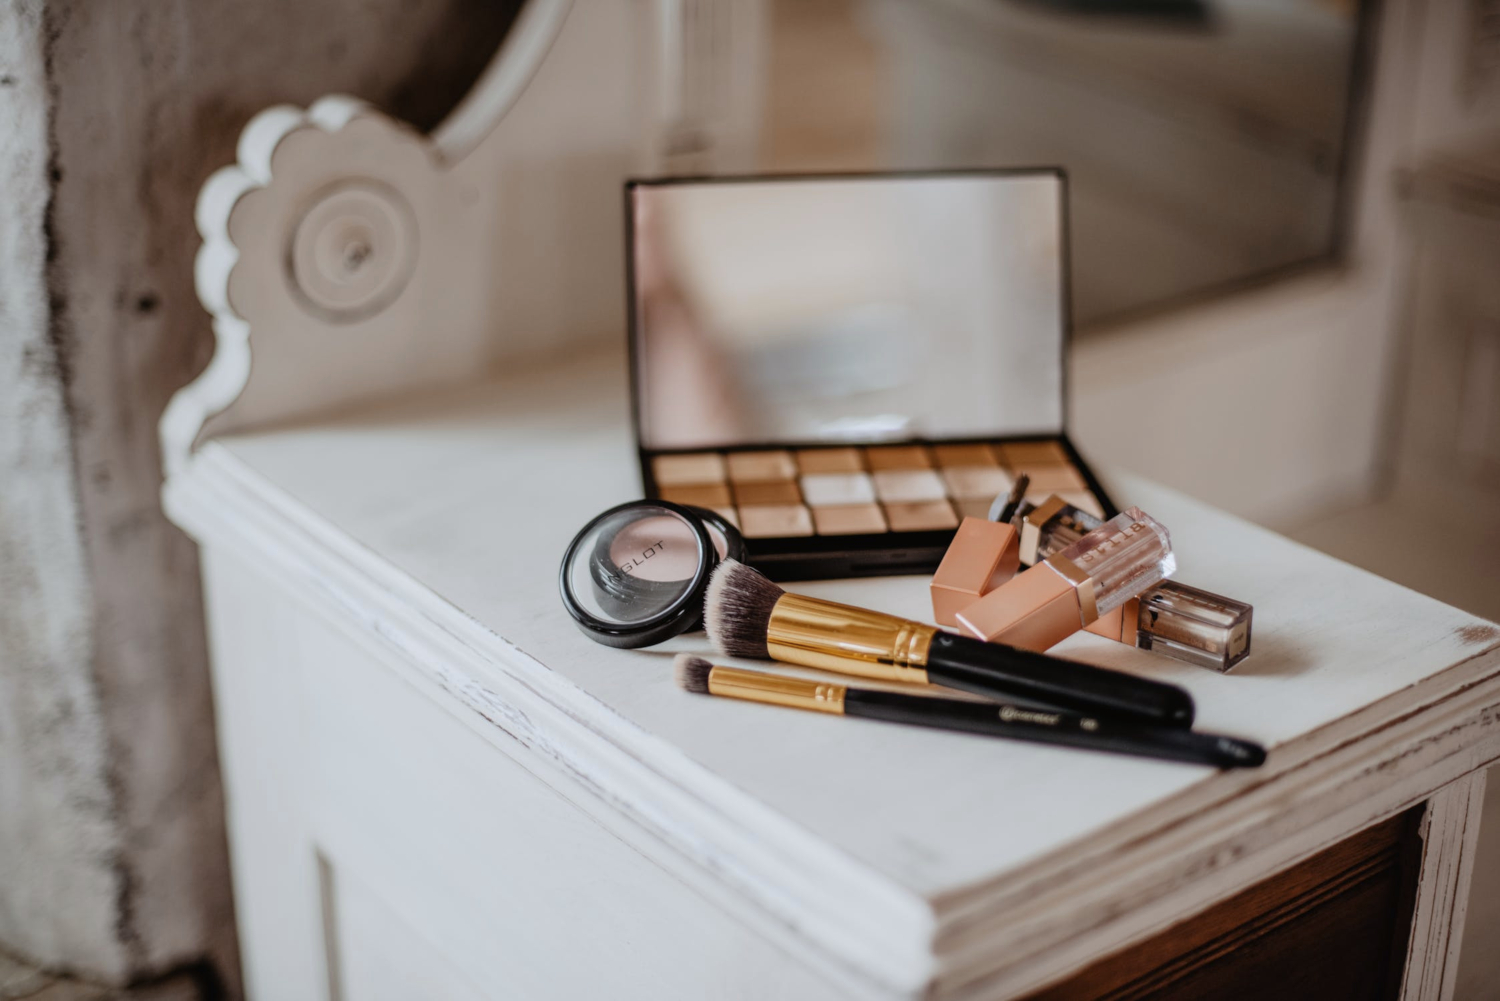 a close up picture of a makeup stash that is laying on a wooden vanity